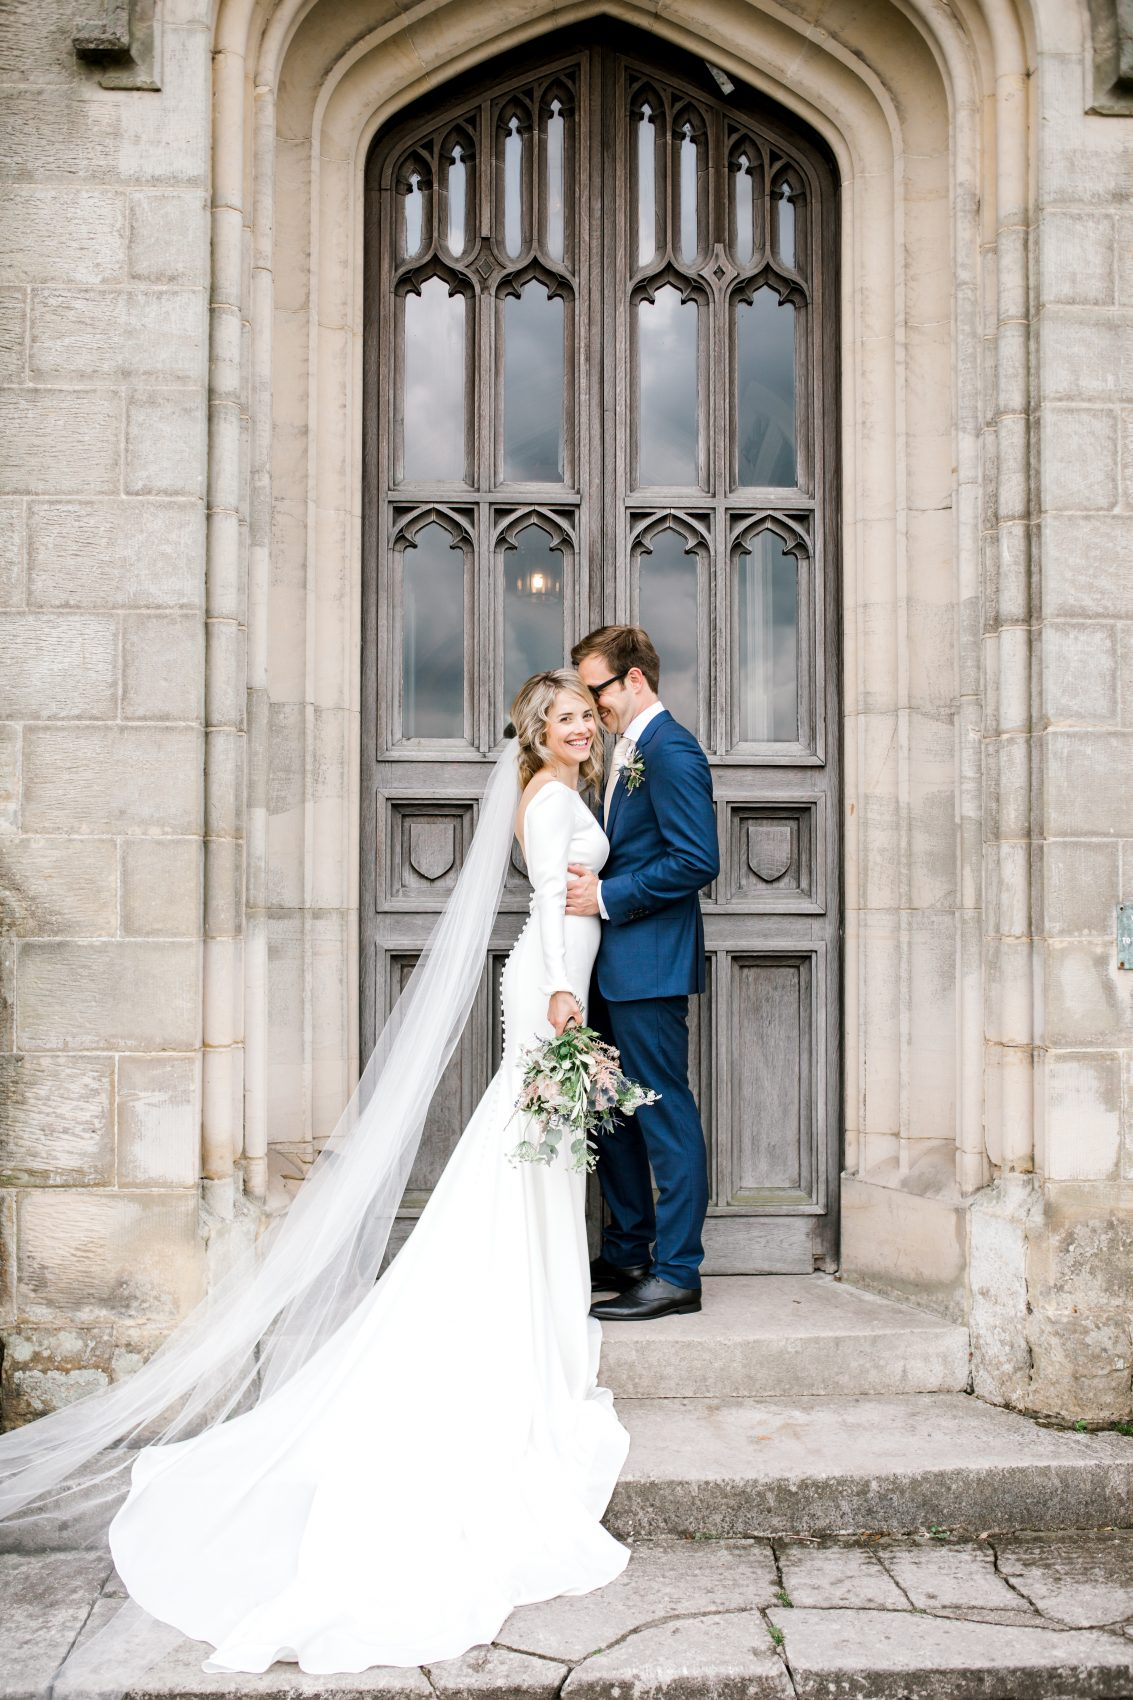 Chiddingstone Castle Wedding - Mikaella Bridal 2105 - Sam Areman Photo-2710